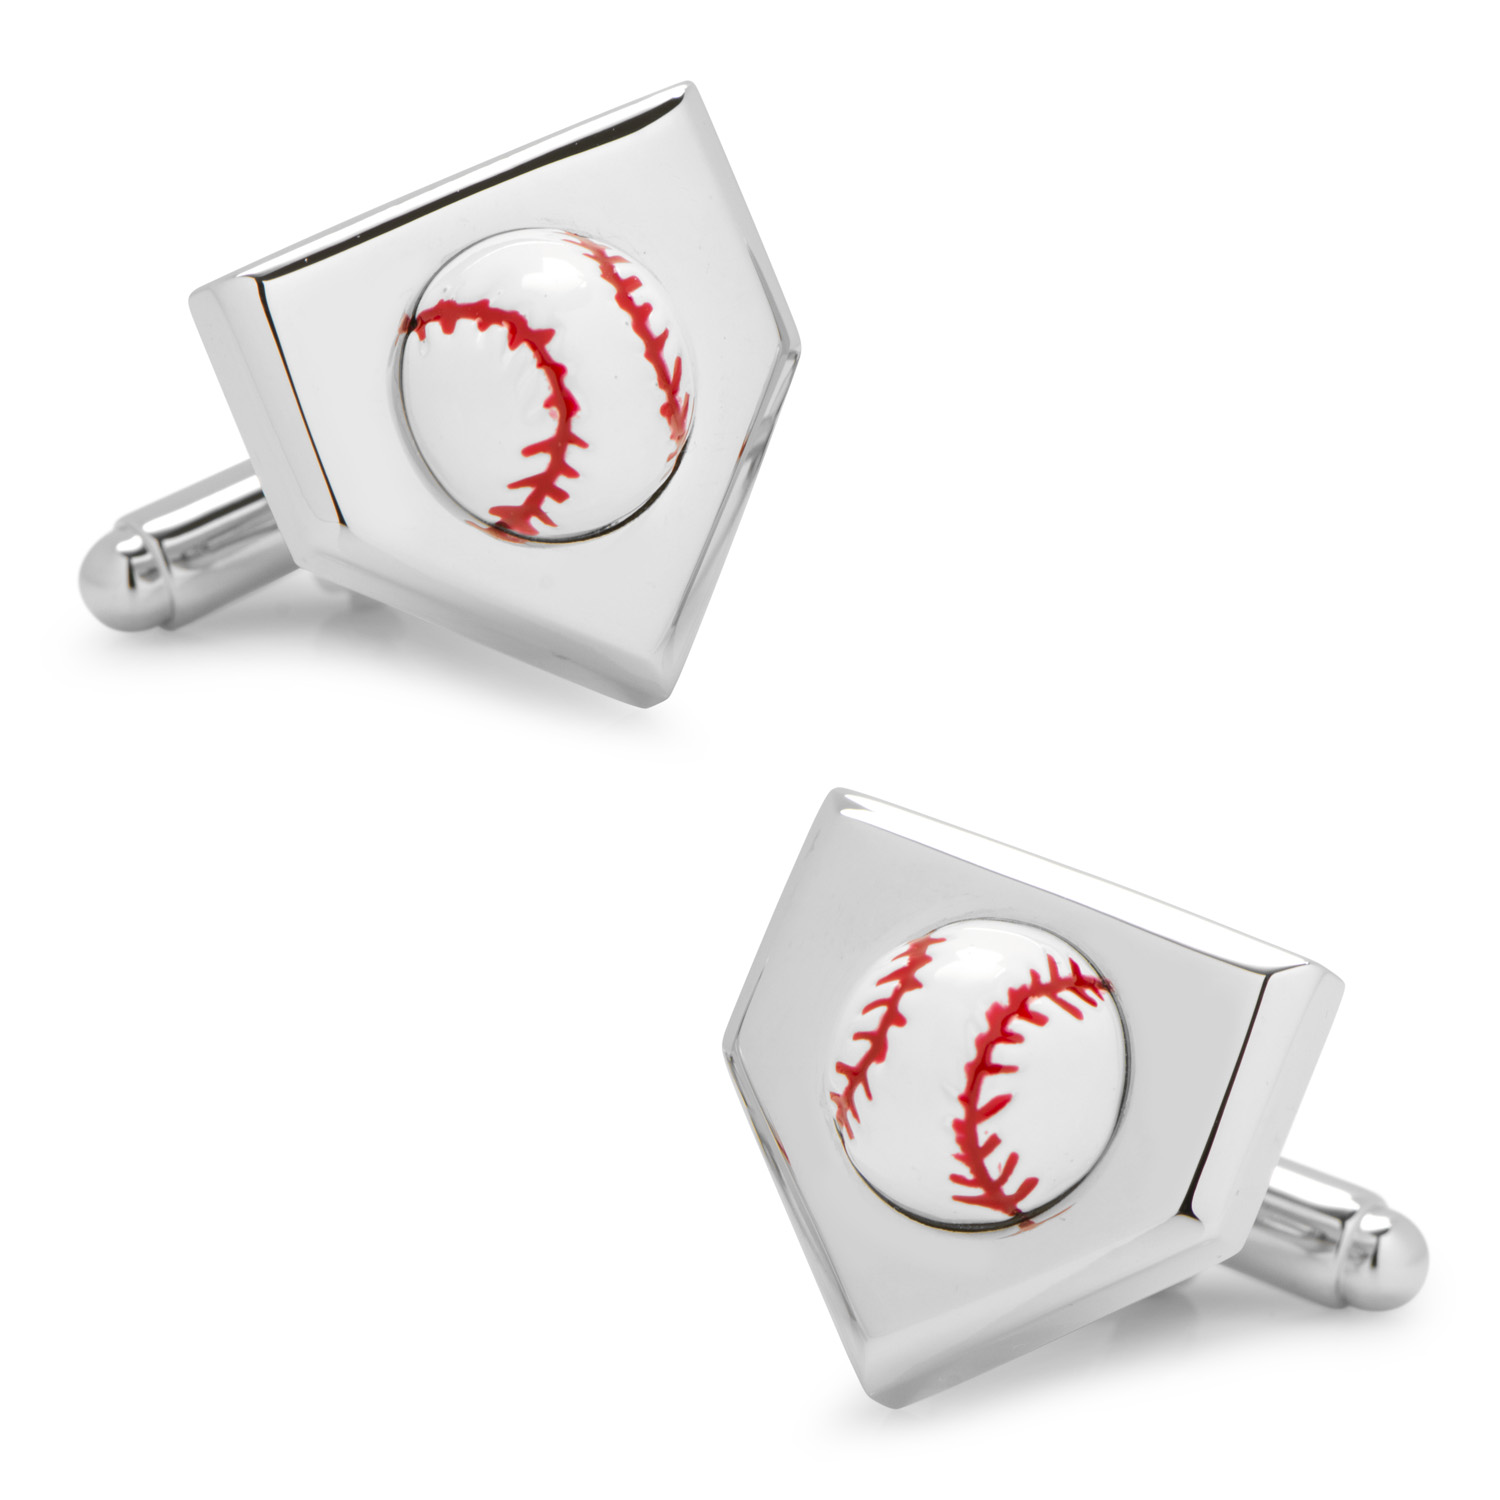 3D Baseball Home Plate Cufflinks